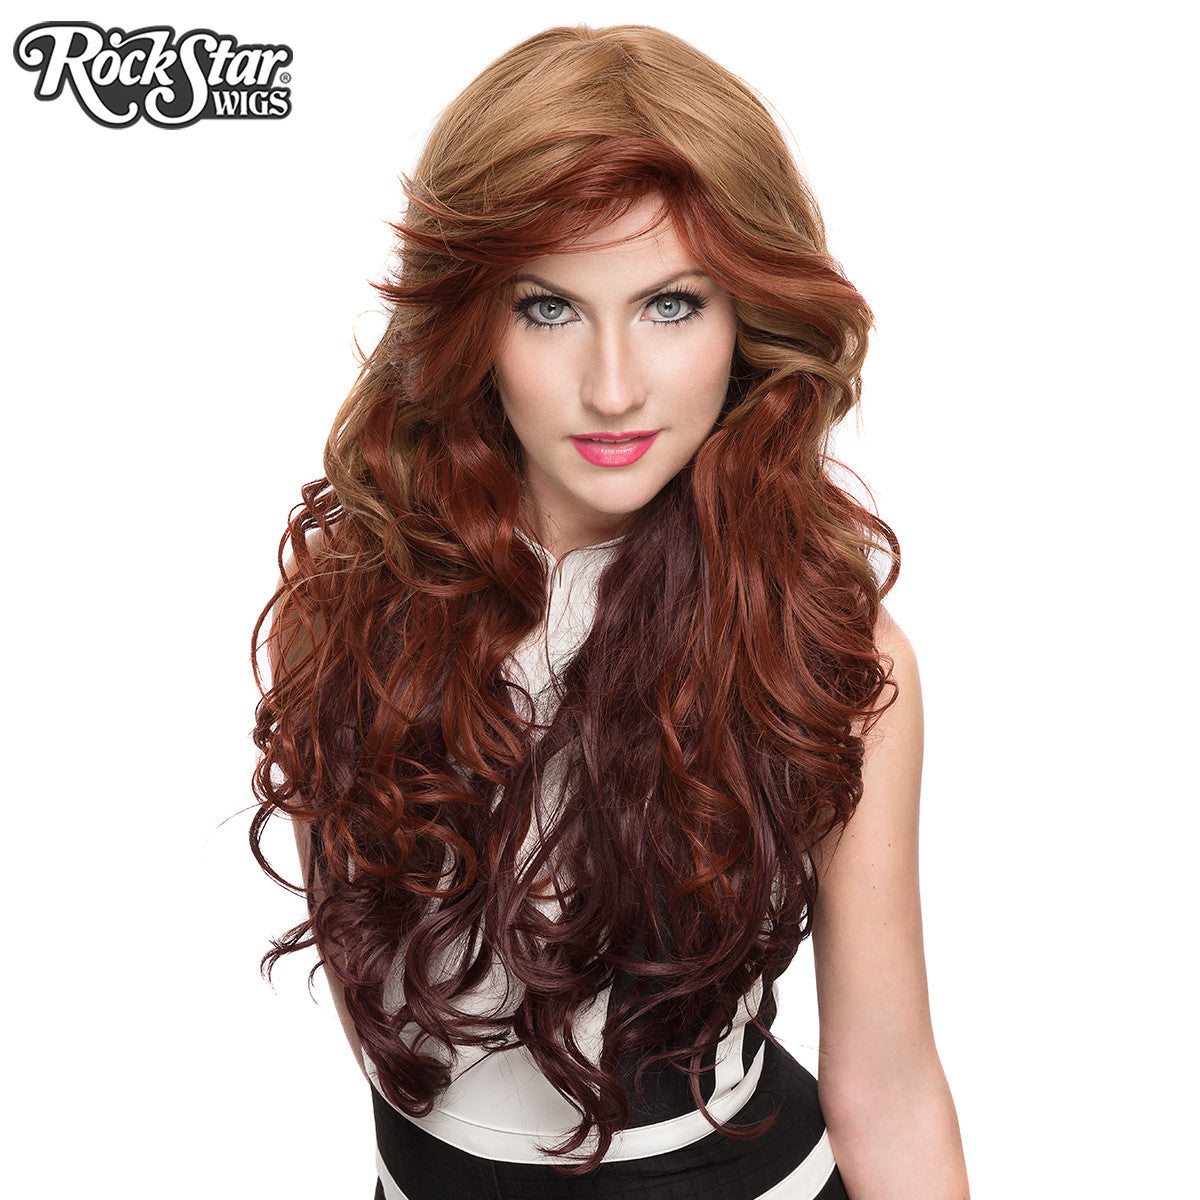 RockStar Wigs® <br> Triflect™ Collection - Foxy Brown-00223